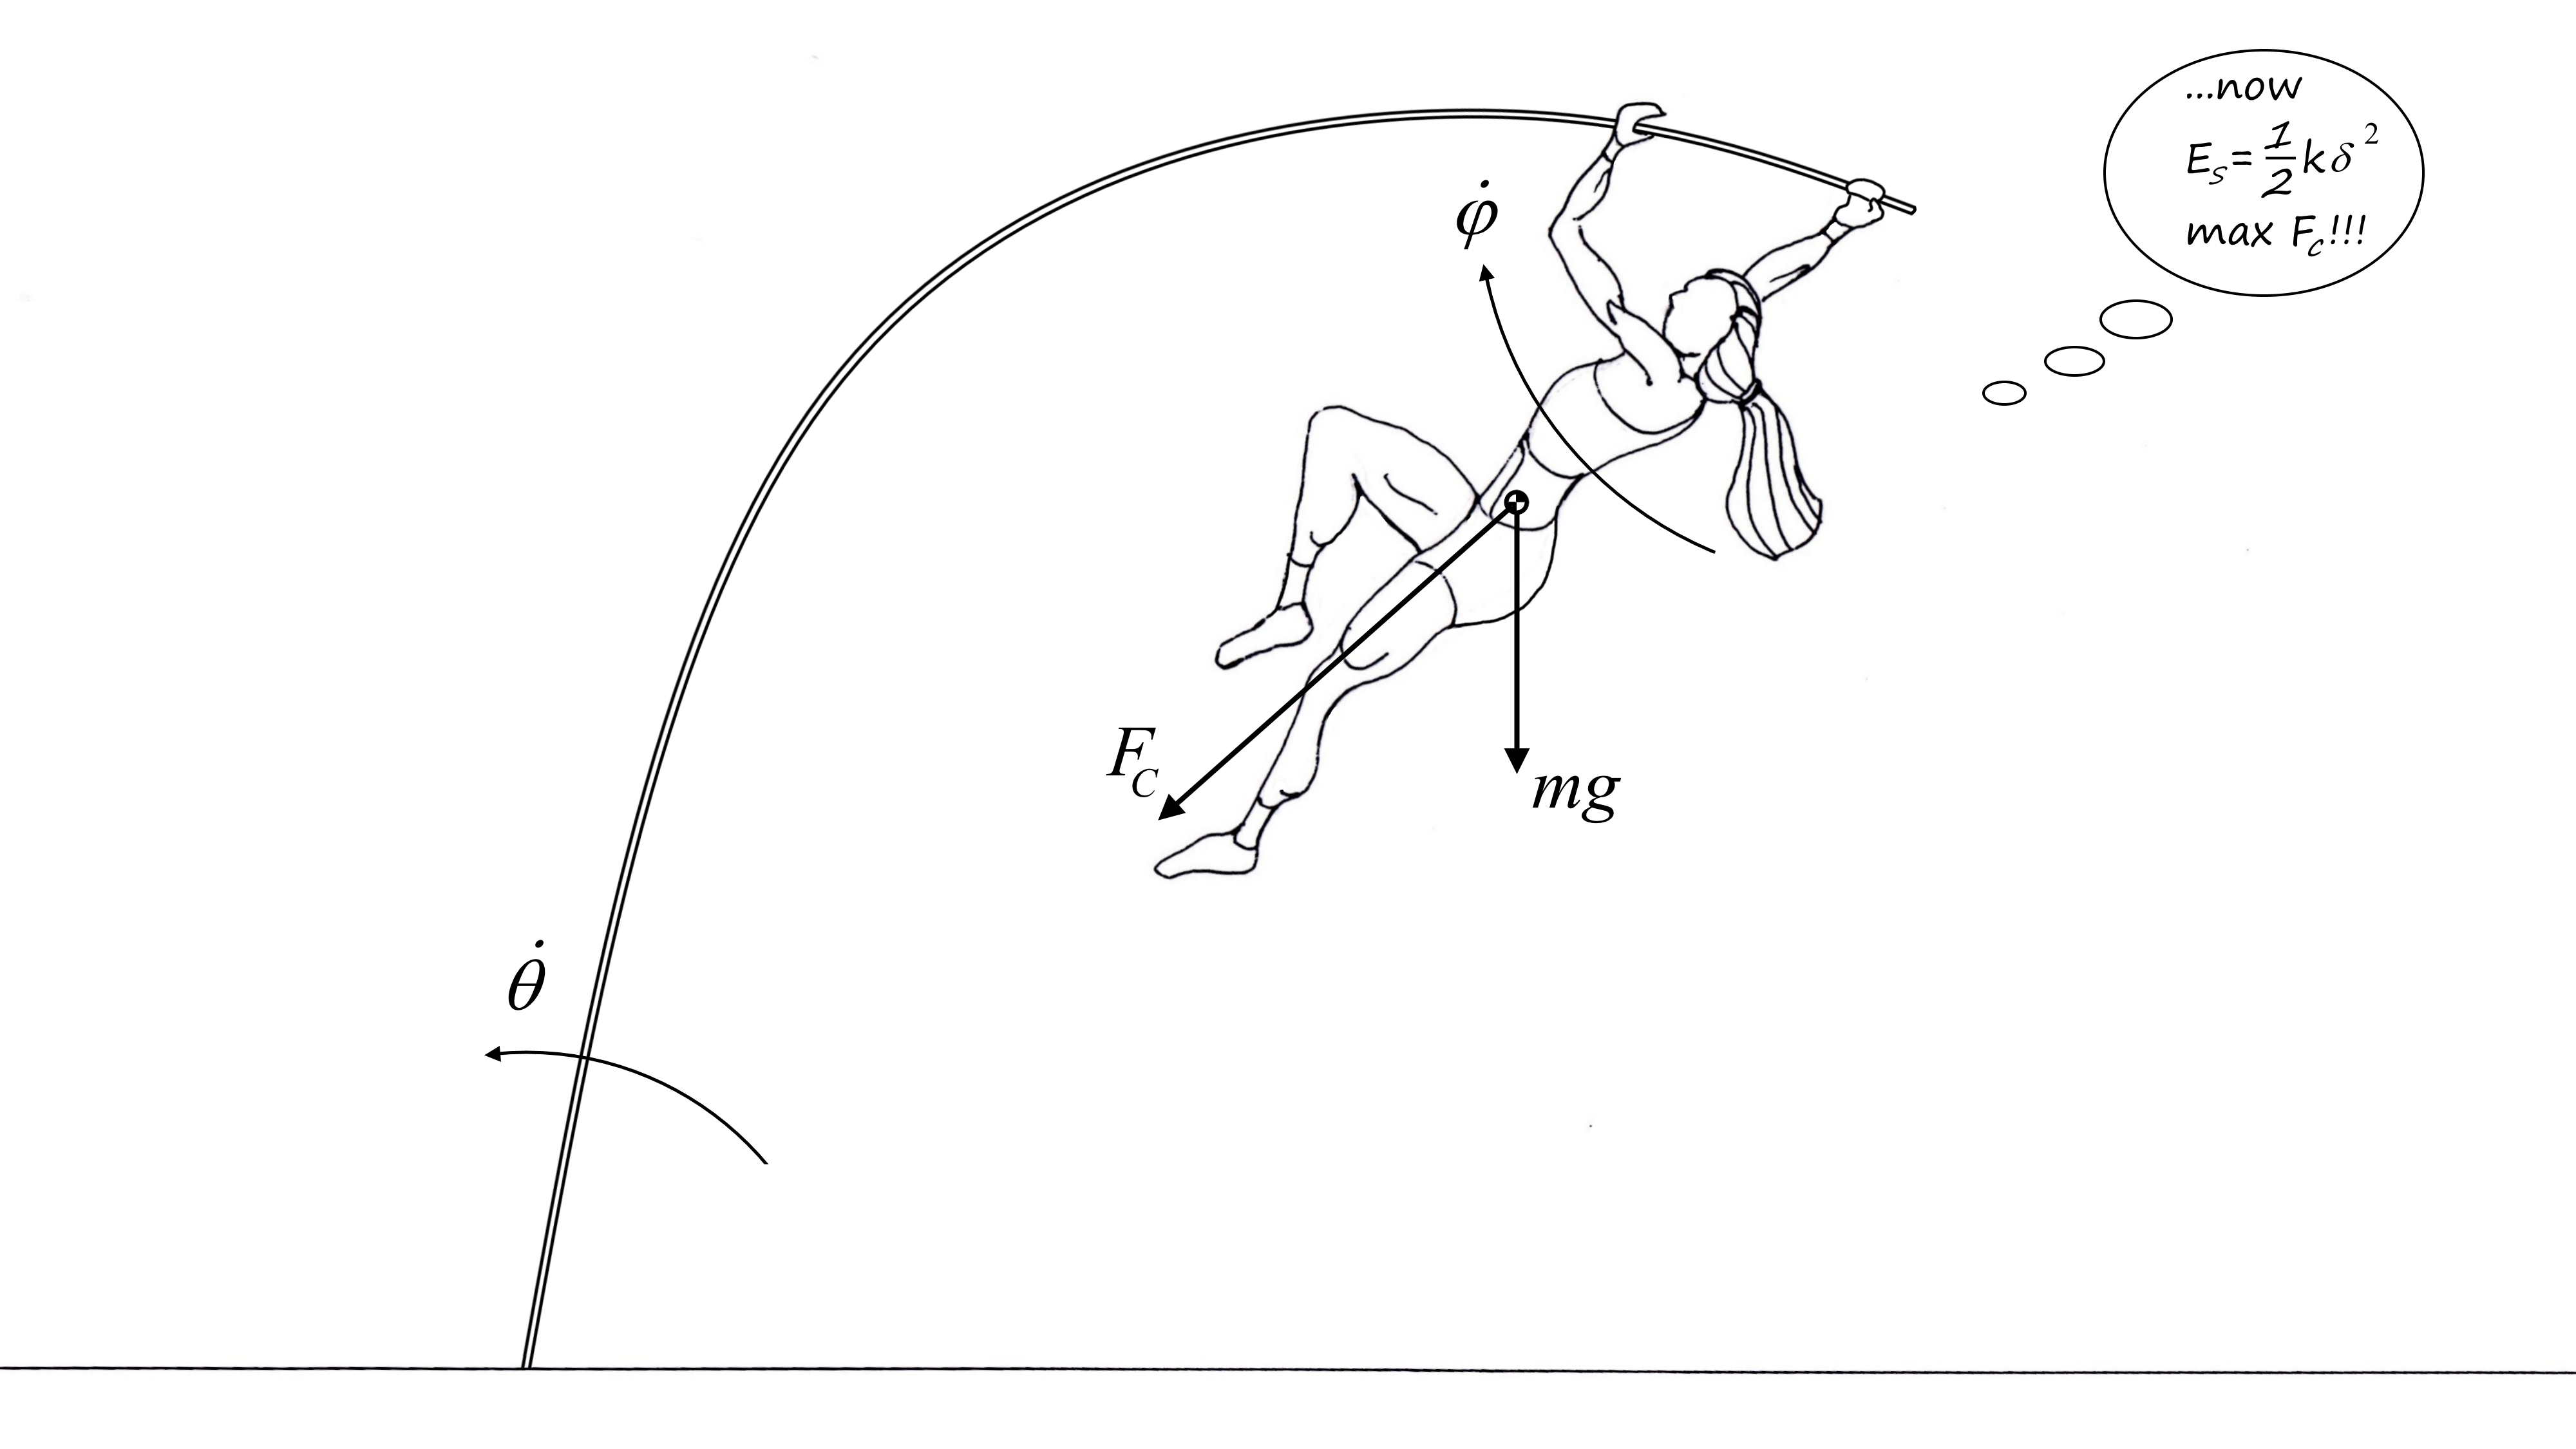 Reaching new heights in pole vaulting a multibody analysis a schematic of a pole vault during the pole bending phase nvjuhfo Images